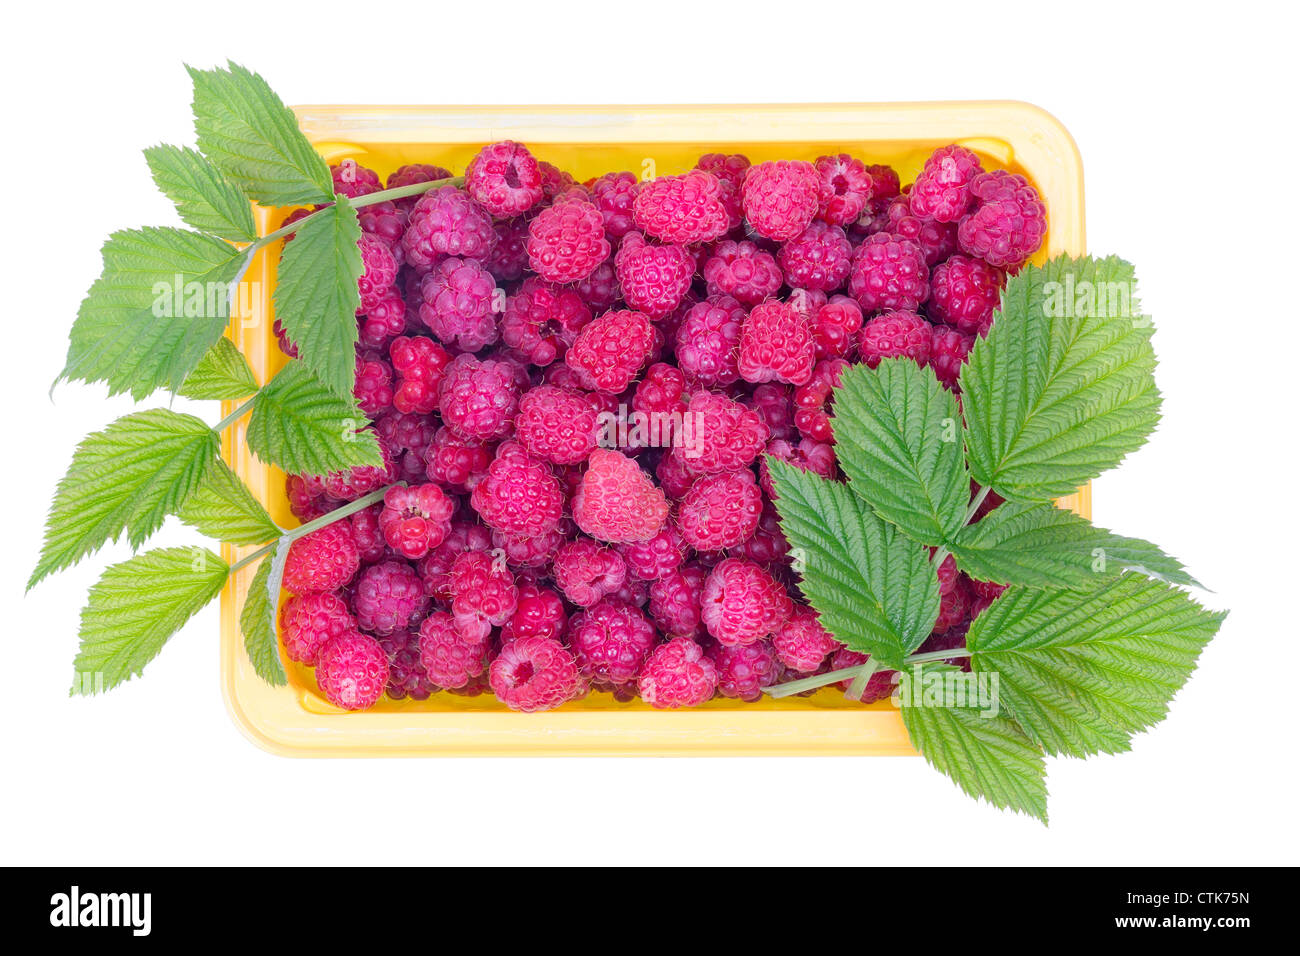 Ripe red raspberries with leaves . Fruits are grown without fertilizers, environmentally friendly product. Studio - Stock Image